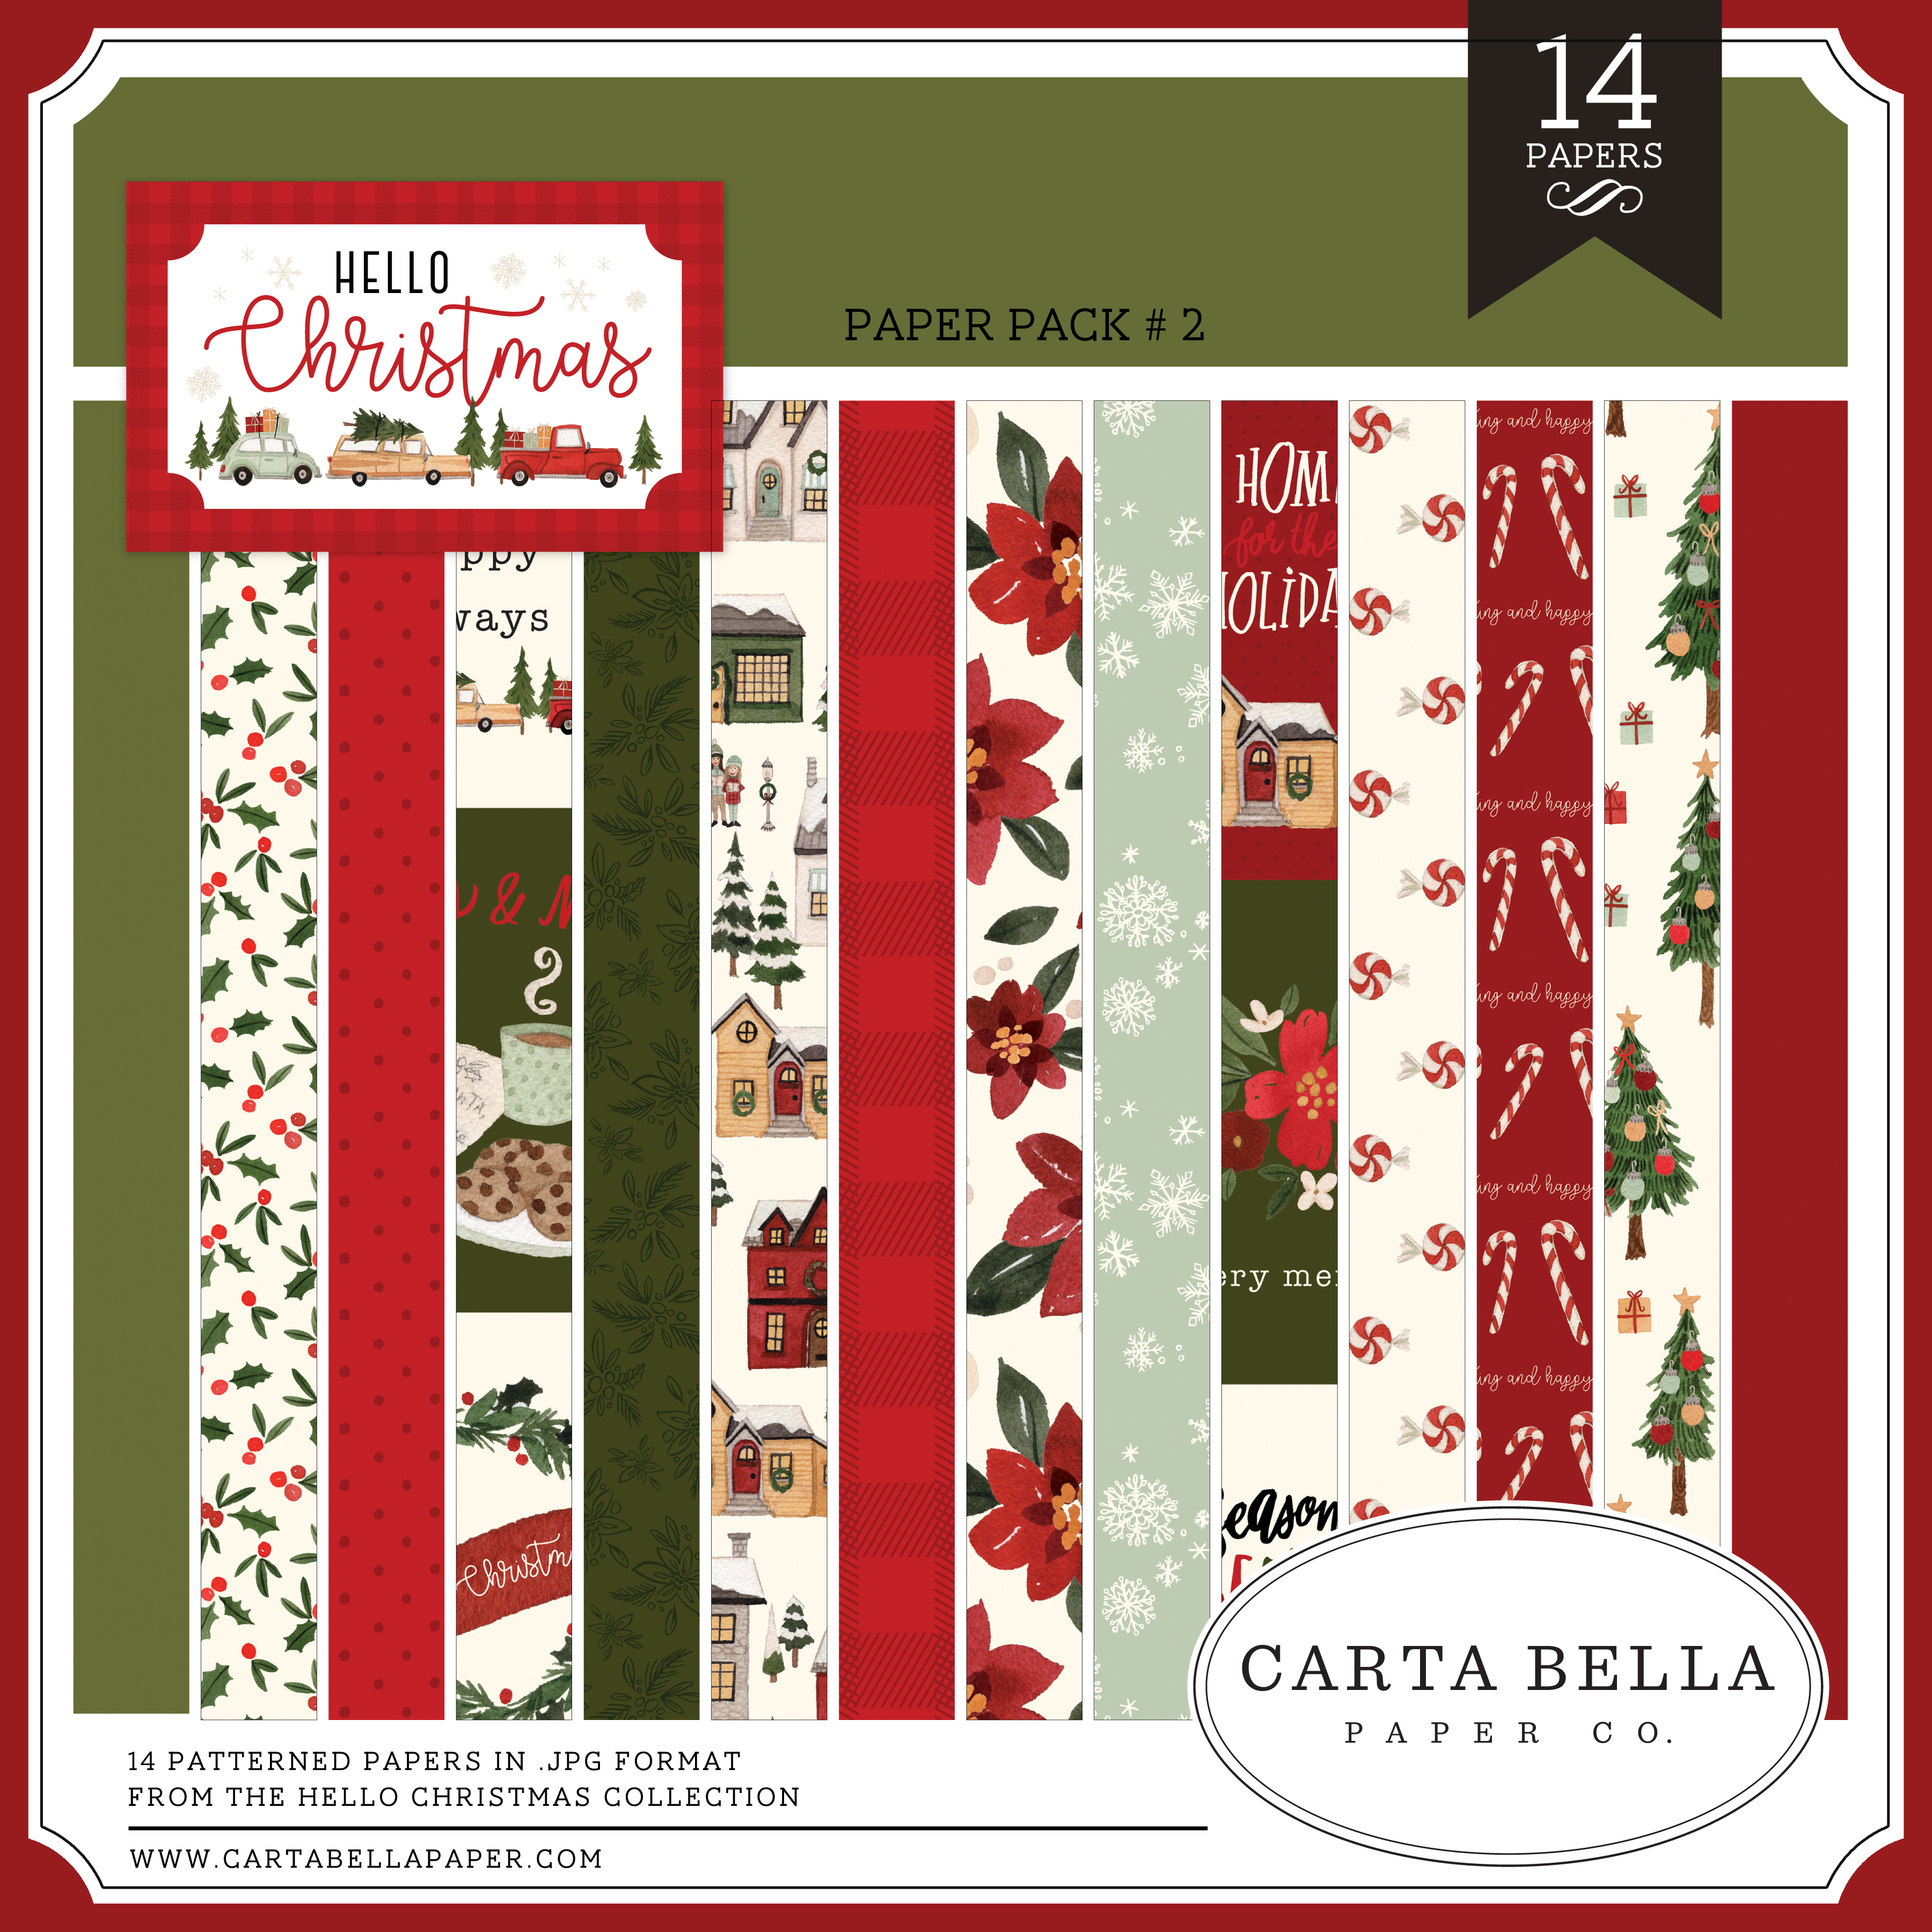 Hello Christmas Paper Pack #2